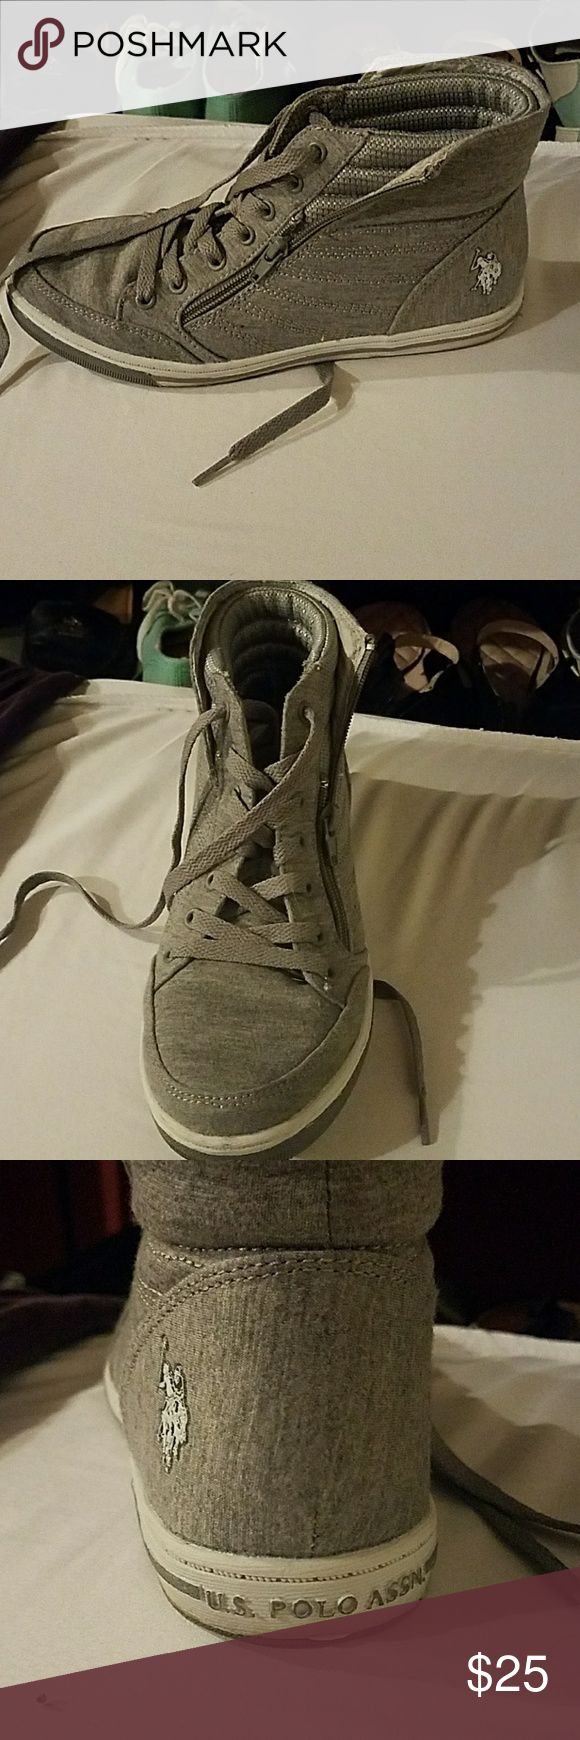 US Polo Association high top sneakers Grey and white sneakers U.S. Polo Assn. Shoes Sneakers